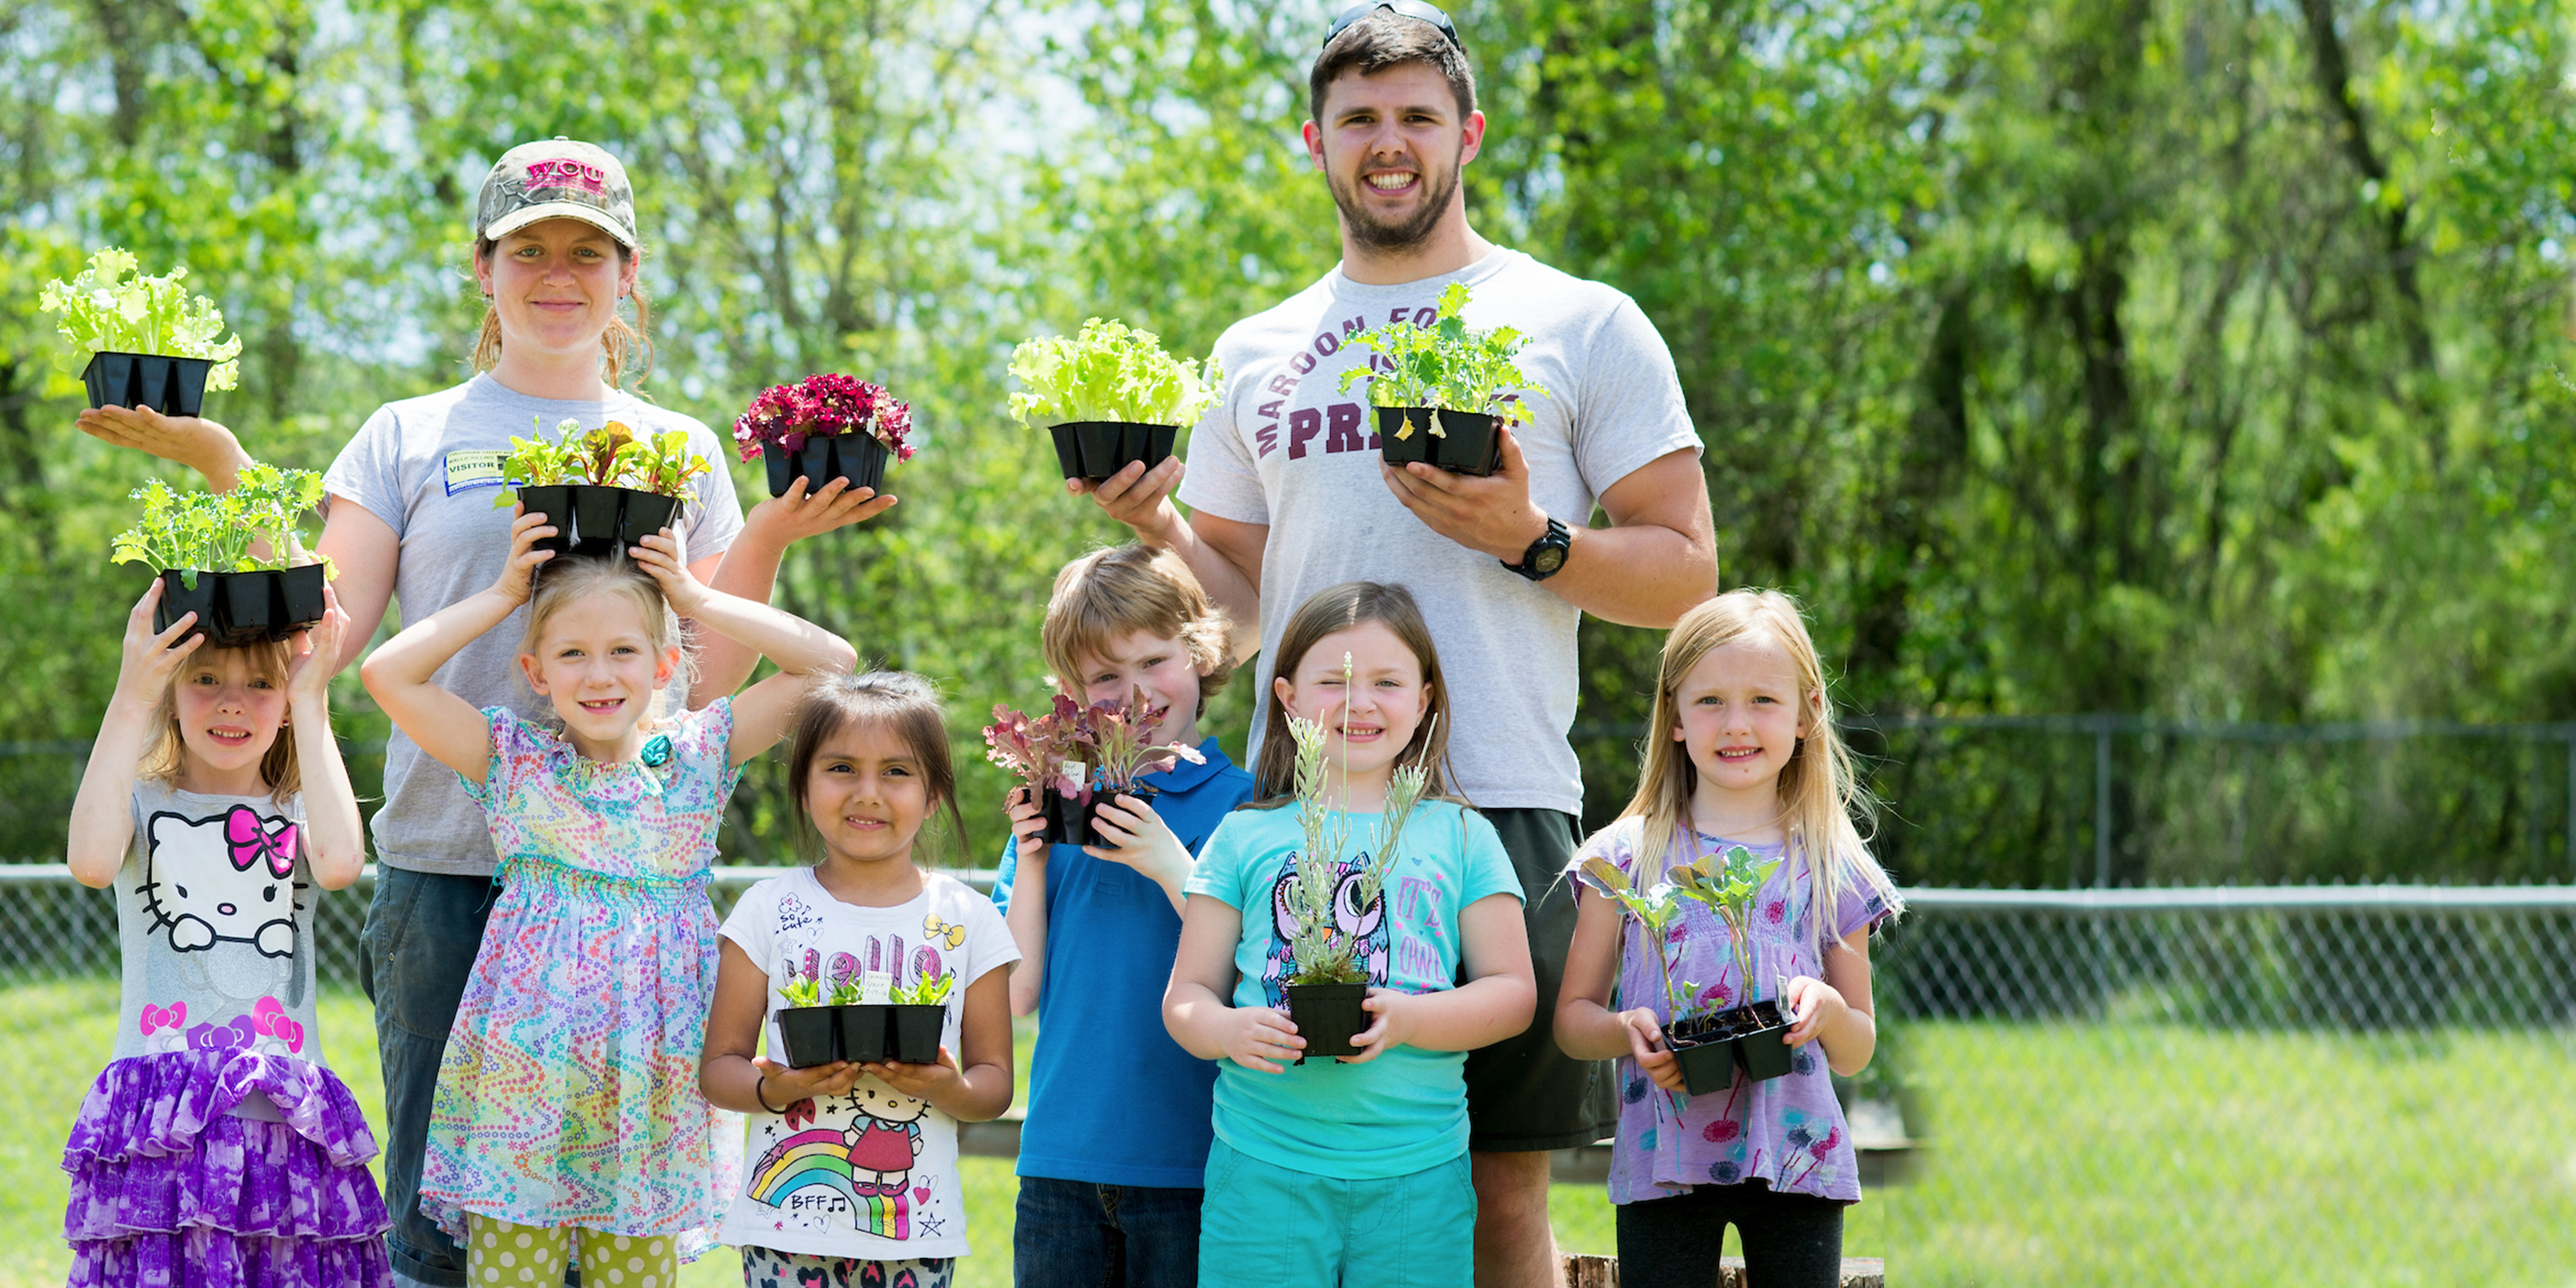 Students from Western Carolina University working with Elementary School Students in the Kinder-Garden to teach them about nutrition, agriculture and biology